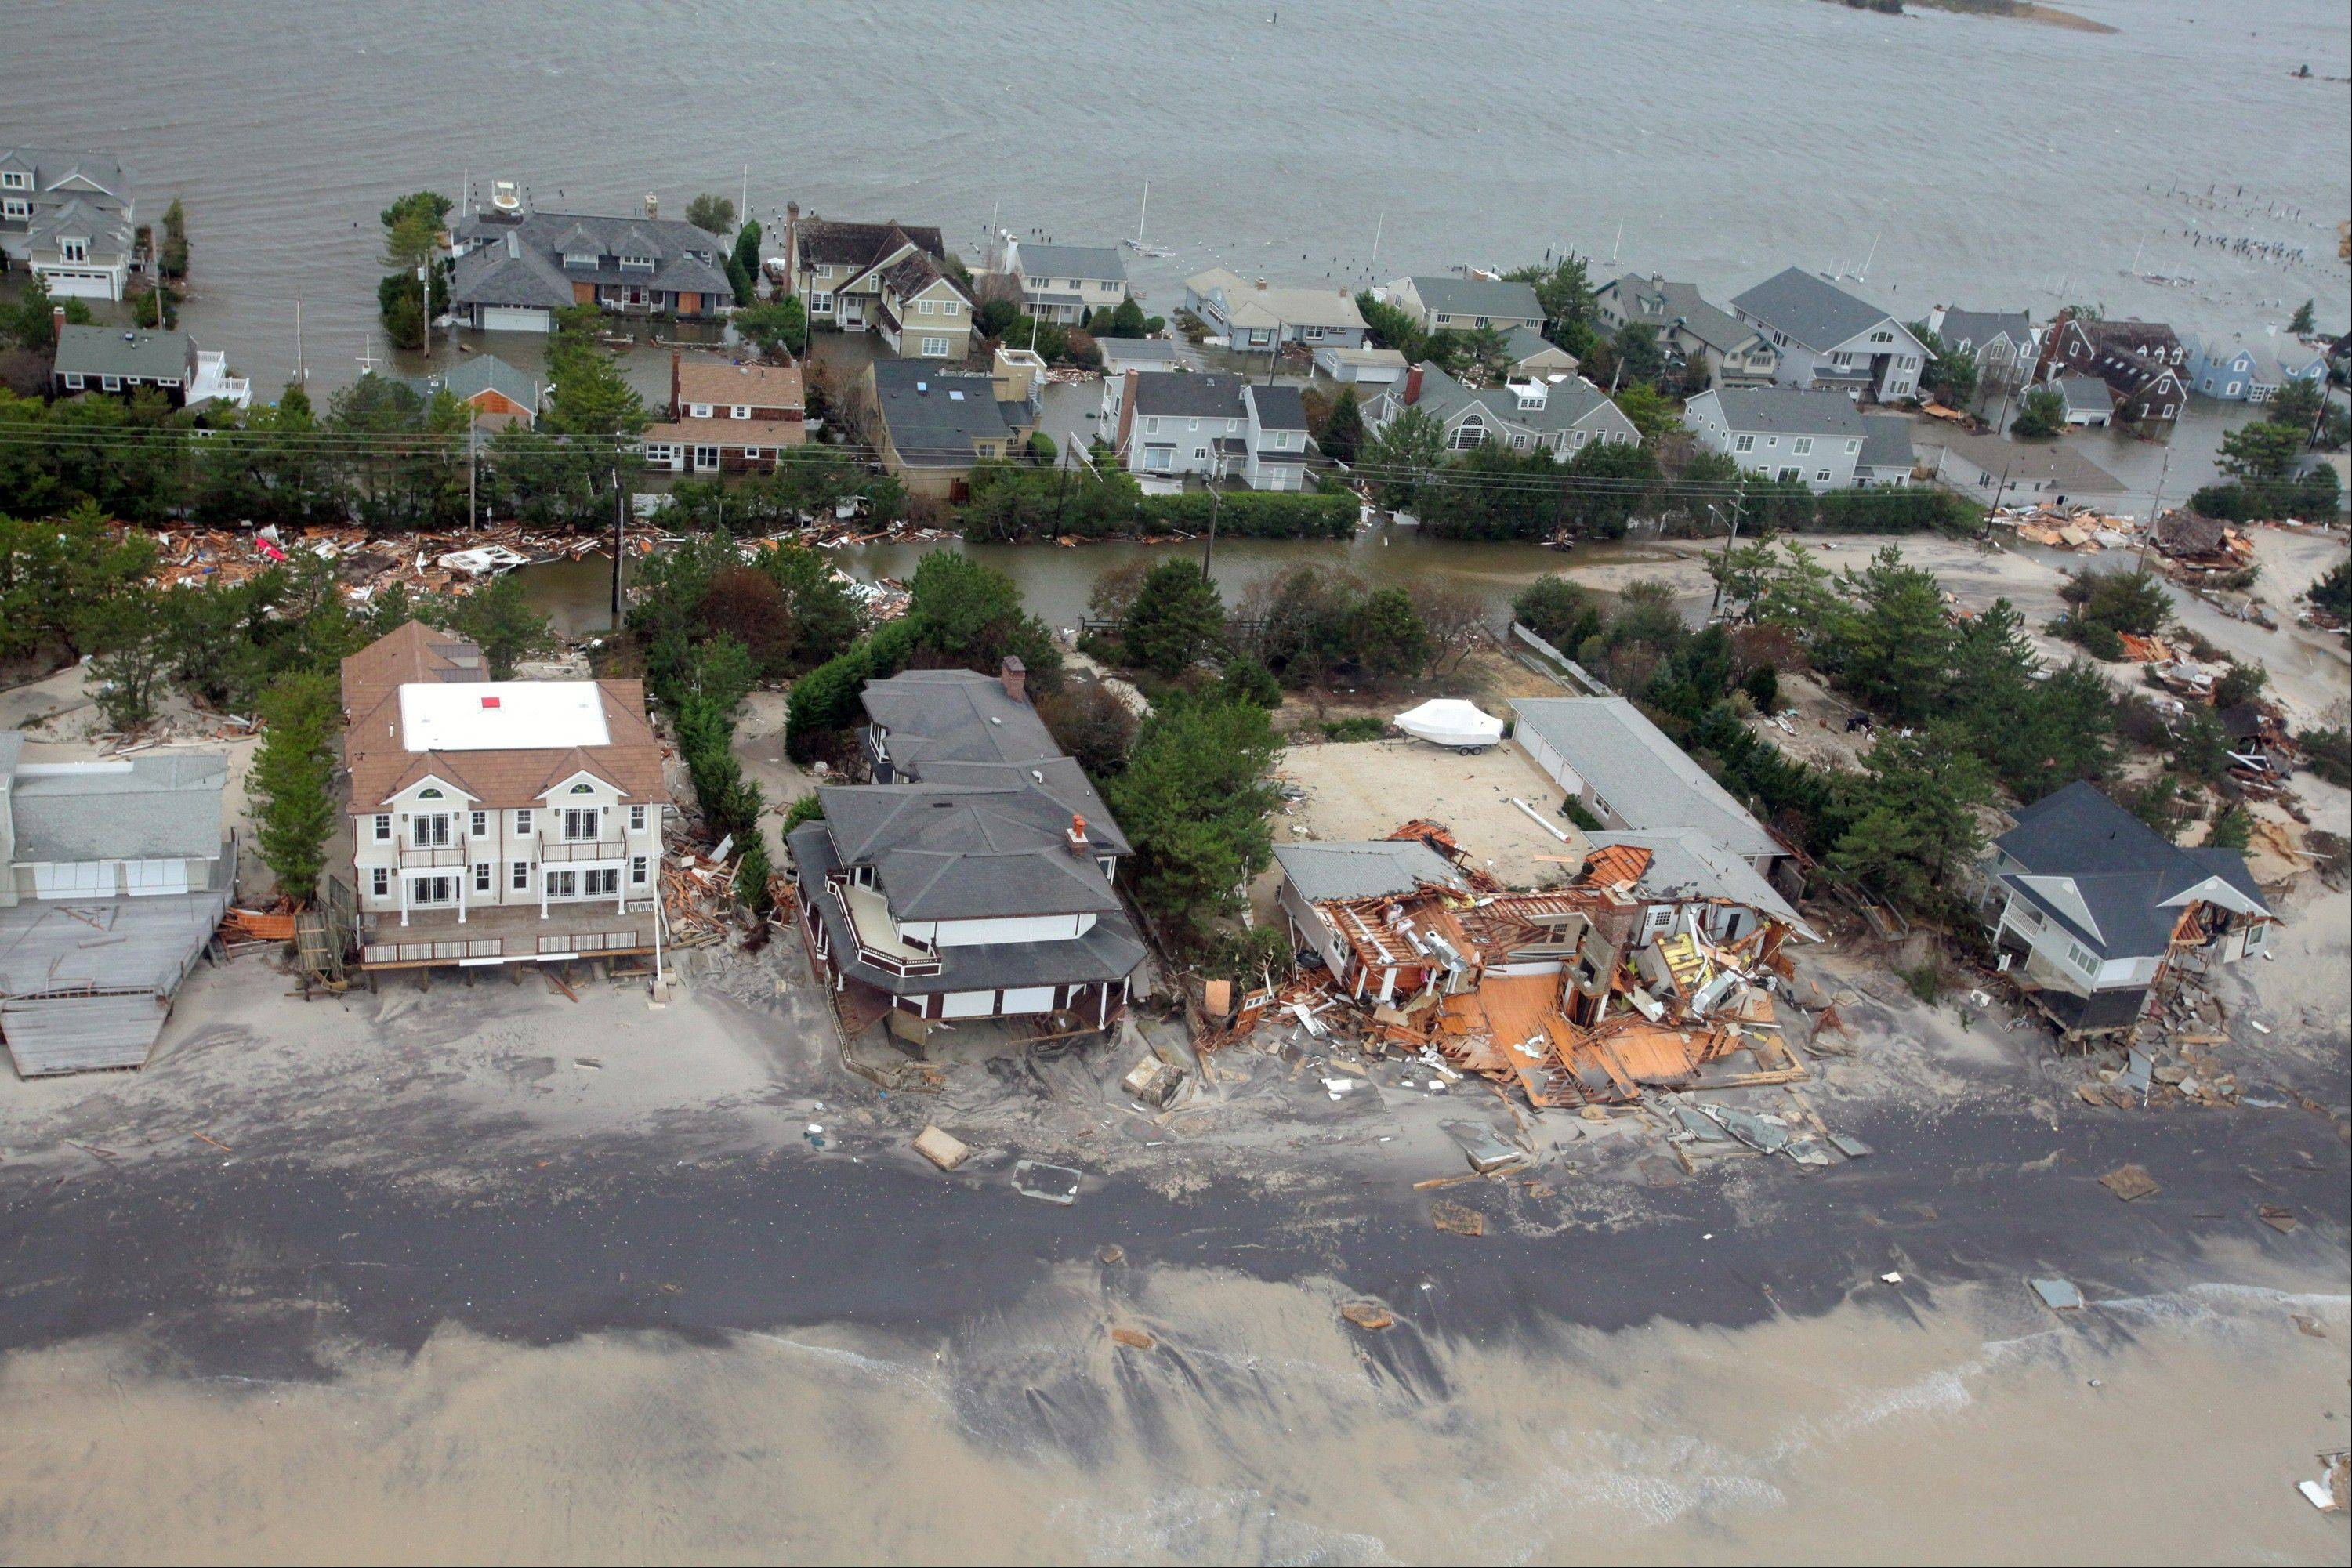 This Oct. 30, 2012 aerial photo provided by the U.S. Air Force shows damage to the New Jersey shoreline during a search and rescue mission by 1-150 Assault Helicopter Battalion, New Jersey Army National Guard. By late Tuesday, the winds and flooding inflicted by the fast-weakening superstorm Sandy had subsided, leaving at least 55 people dead along the Atlantic Coast and splintering beachfront homes and boardwalks from the mid-Atlantic states to southern New England.